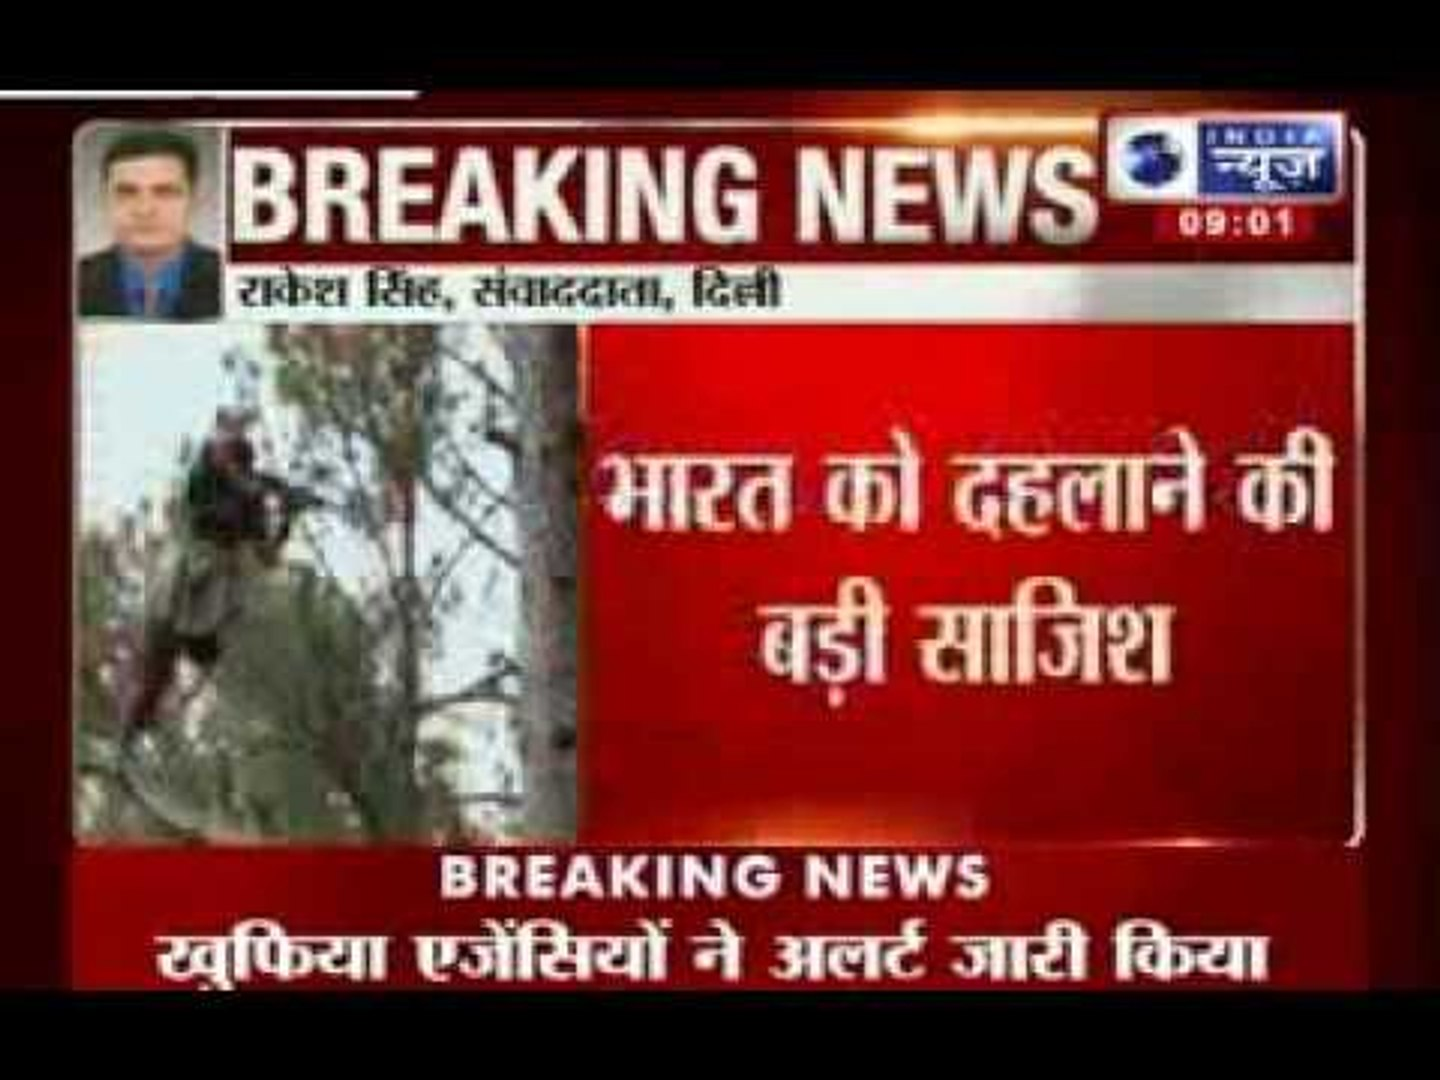 India News : Pakistan-trained terrorists planning to attack south India